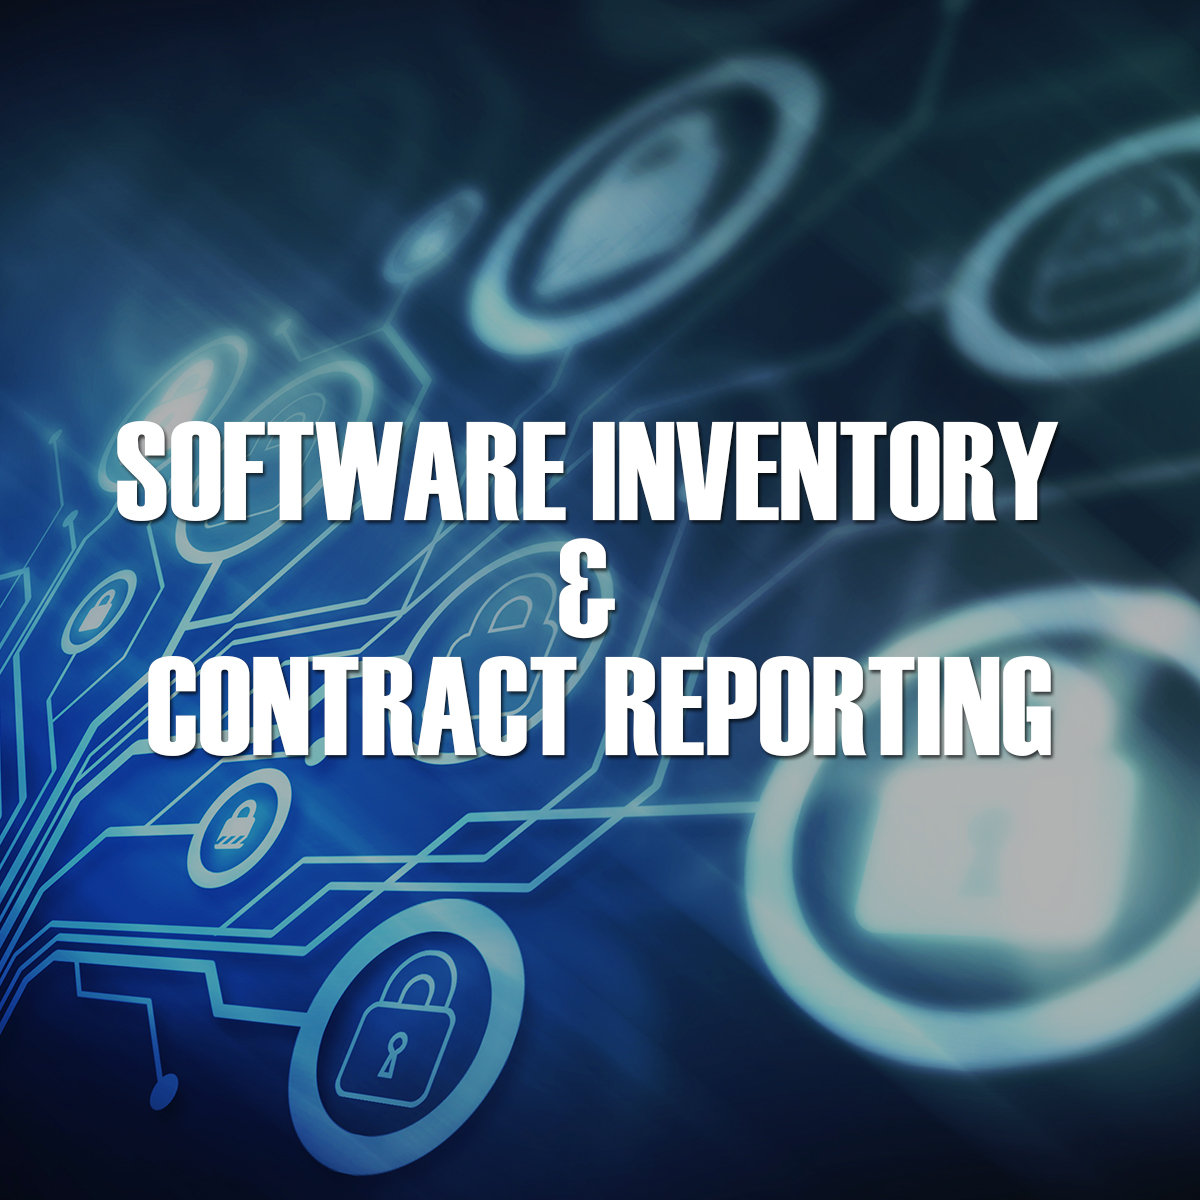 Software Inventory & Contract Reporting